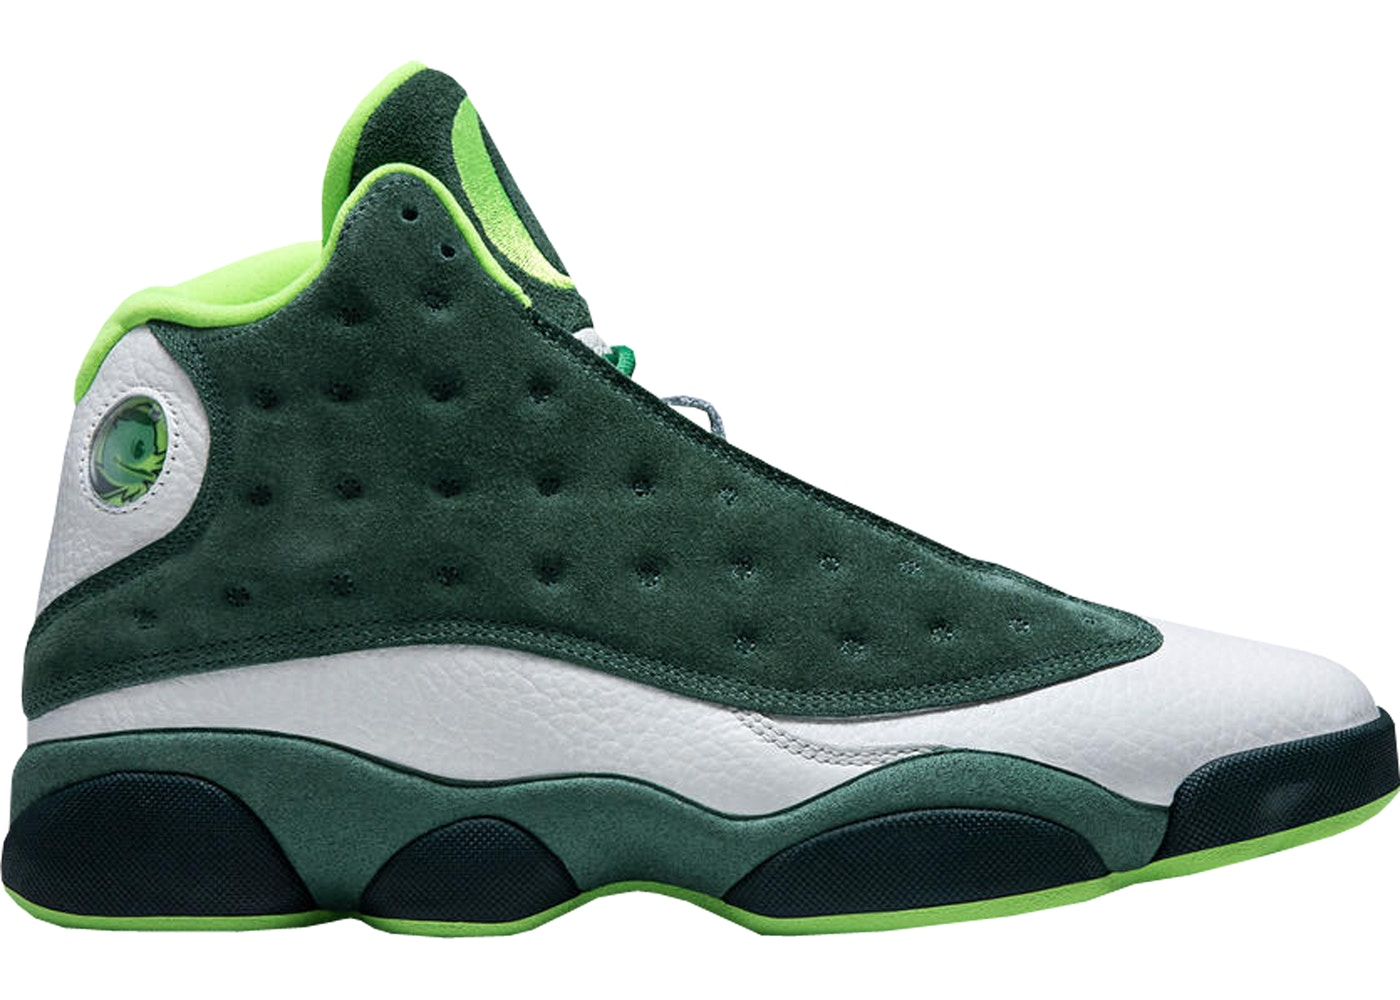 superior quality 57405 dc260 Air Jordan 13 Size 16 Shoes - Release Date